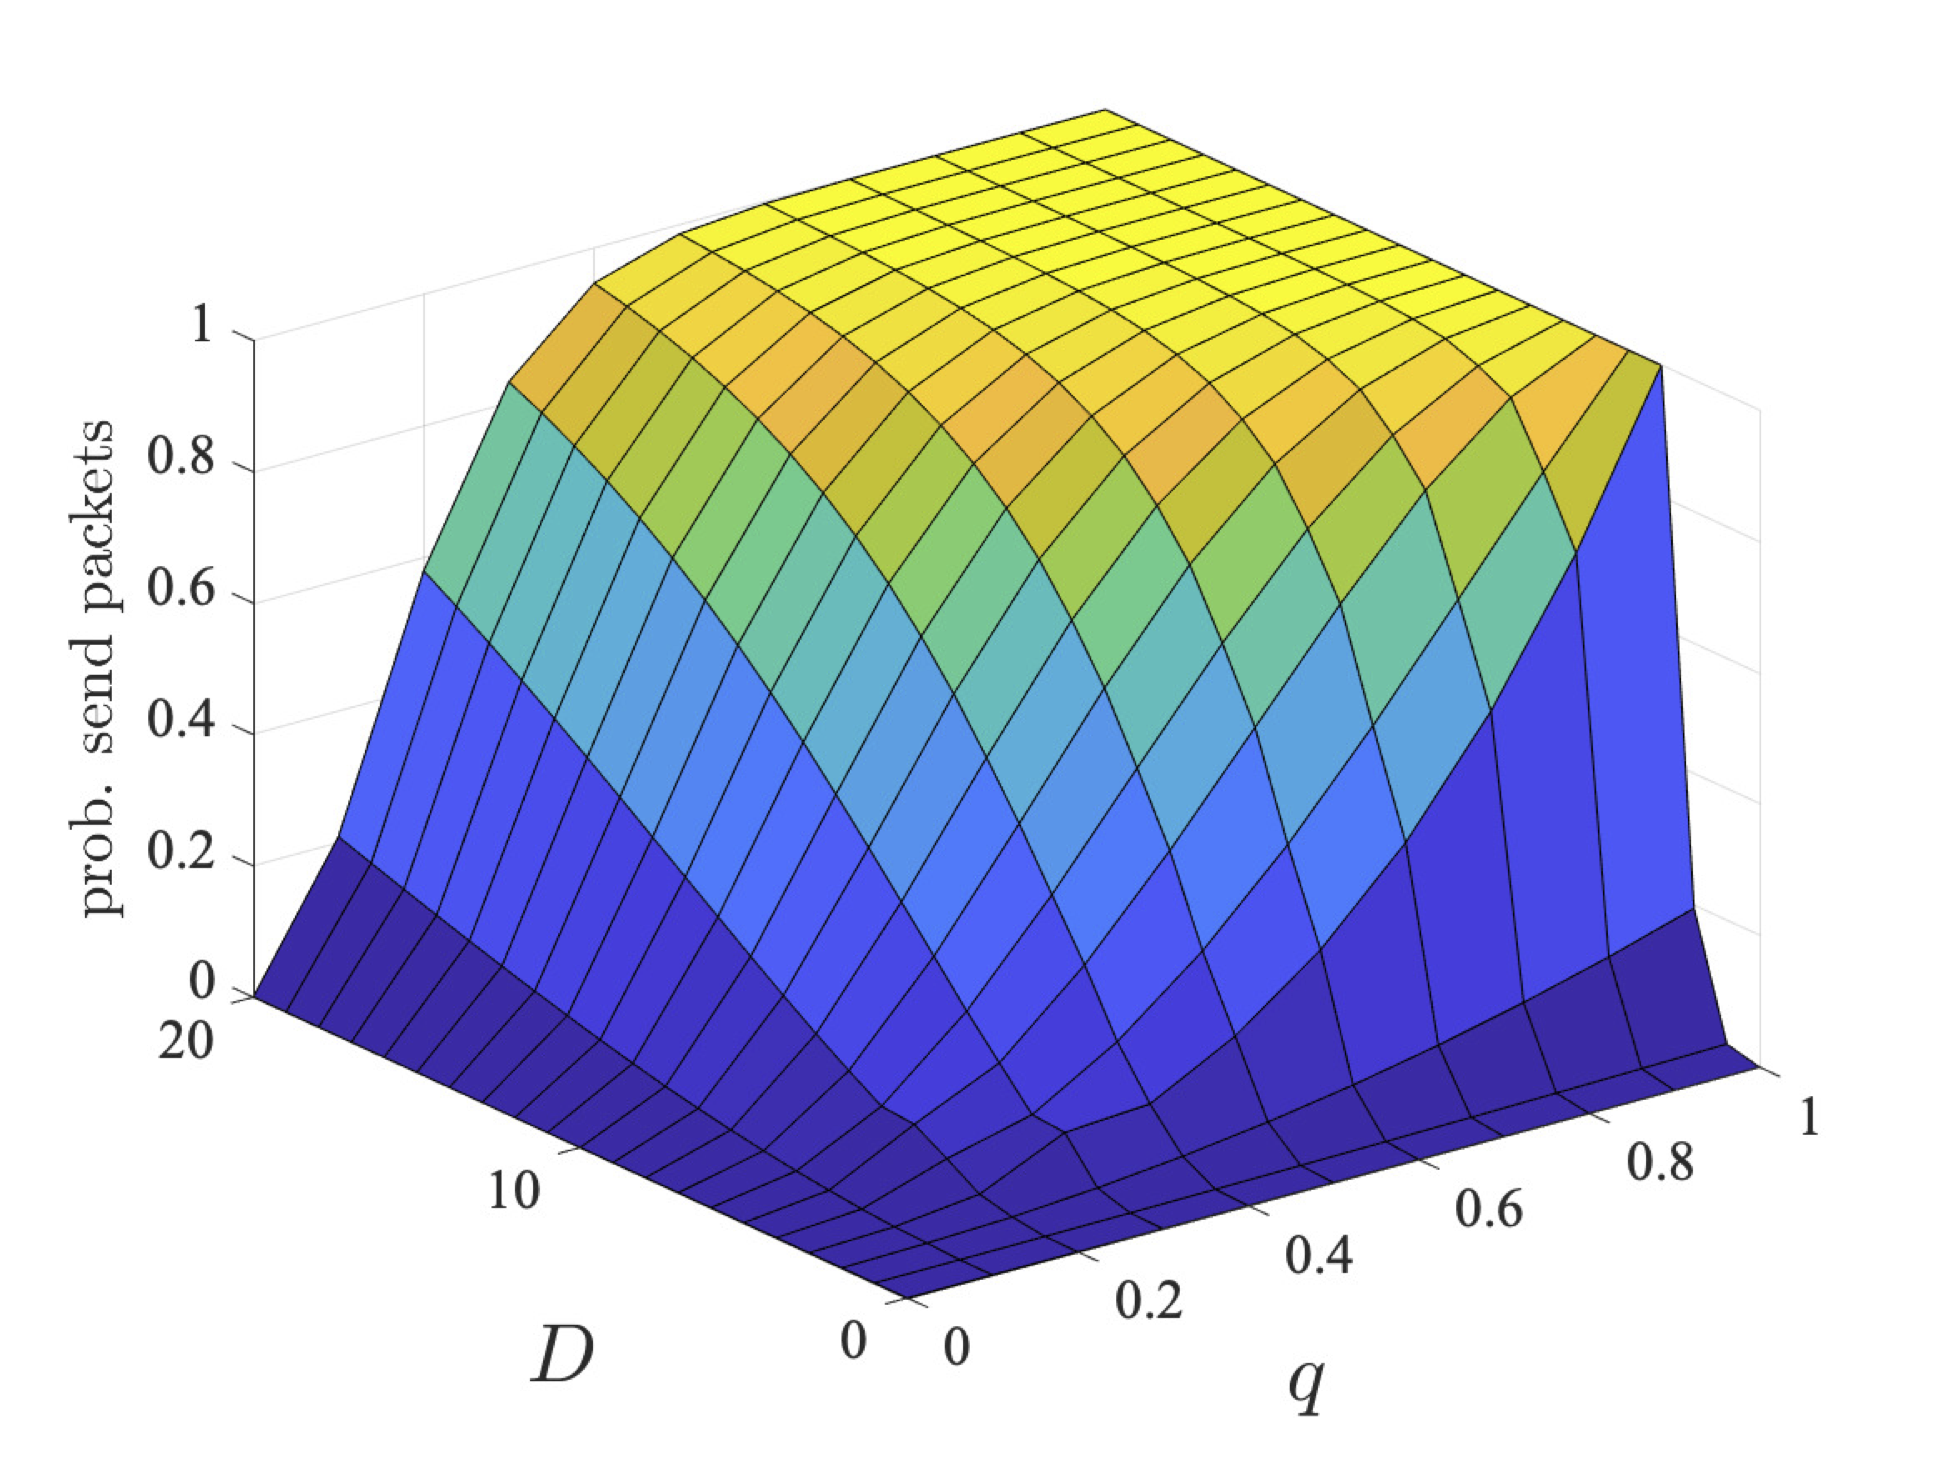 plot: maximum probability users 2 and 3 send their packets within a deadline (bcmax=1)